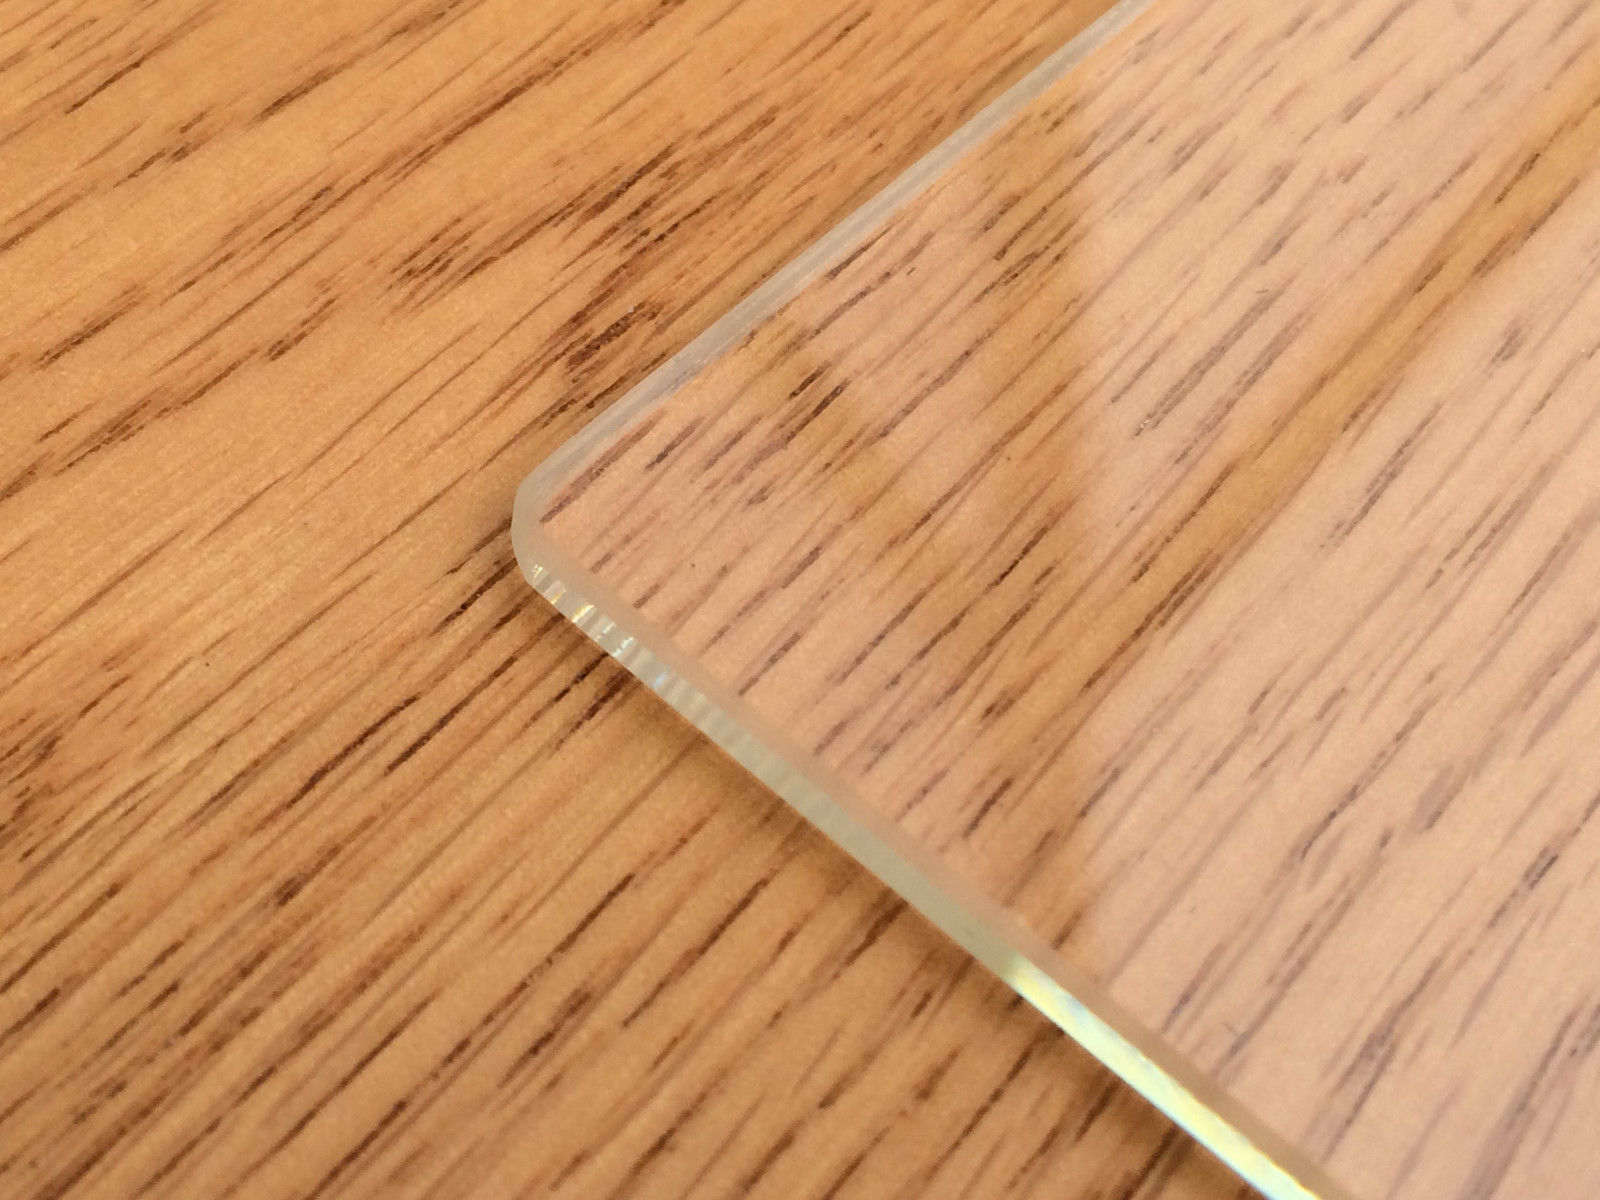 Clear Borosilicate Glass Heat Bed 310x310x4mm for 3D Printers CR-10 CR-10S S3 цены